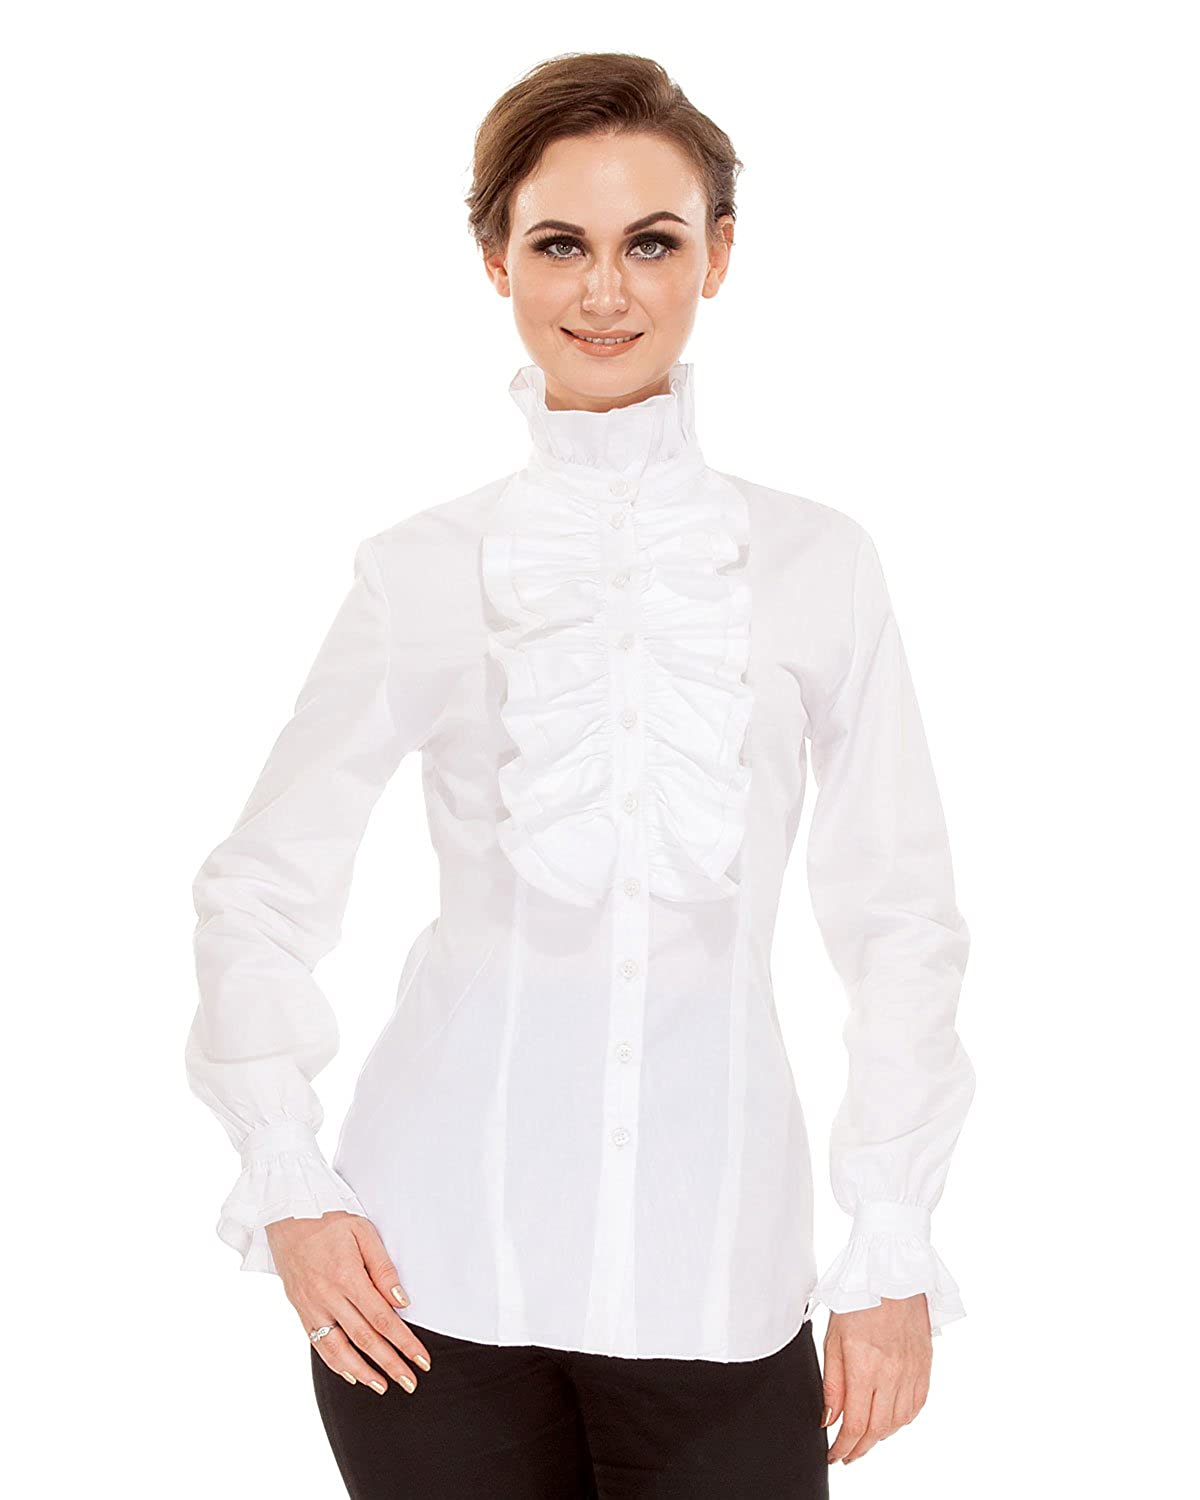 Edwardian Blouses |  Lace Blouses & Sweaters ThePirateDressing Steampunk Gothic Victorian Cosplay Costume Womens Stand-up Collar 100% Cotton Blouse Shirt $37.95 AT vintagedancer.com